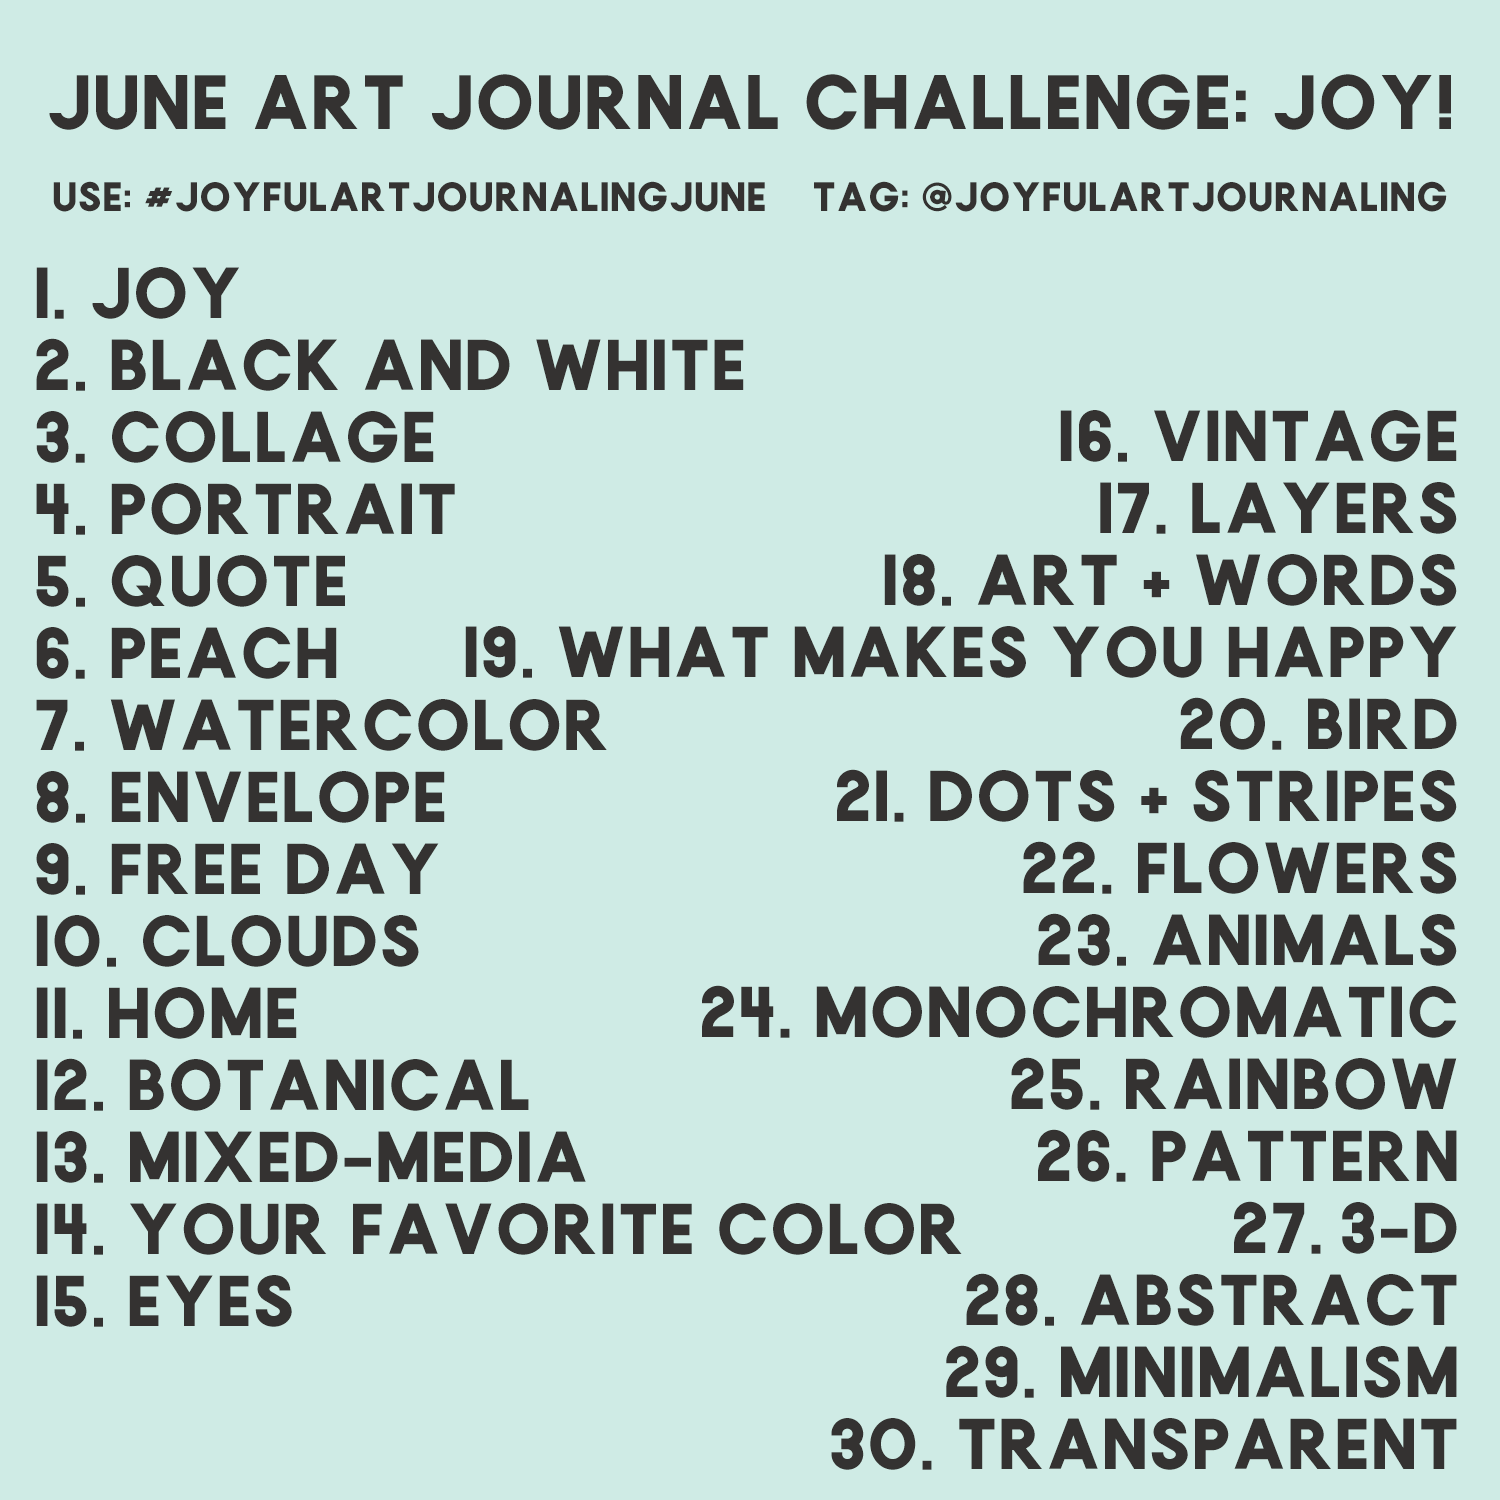 Join us in this 30 day art journal challenge to bring more JOY into your life, and the world, through art journaling! Using these 30 daily art journaling prompts, we'll creat art journal spreads and share them on Instagram. #joyfulartjournaling